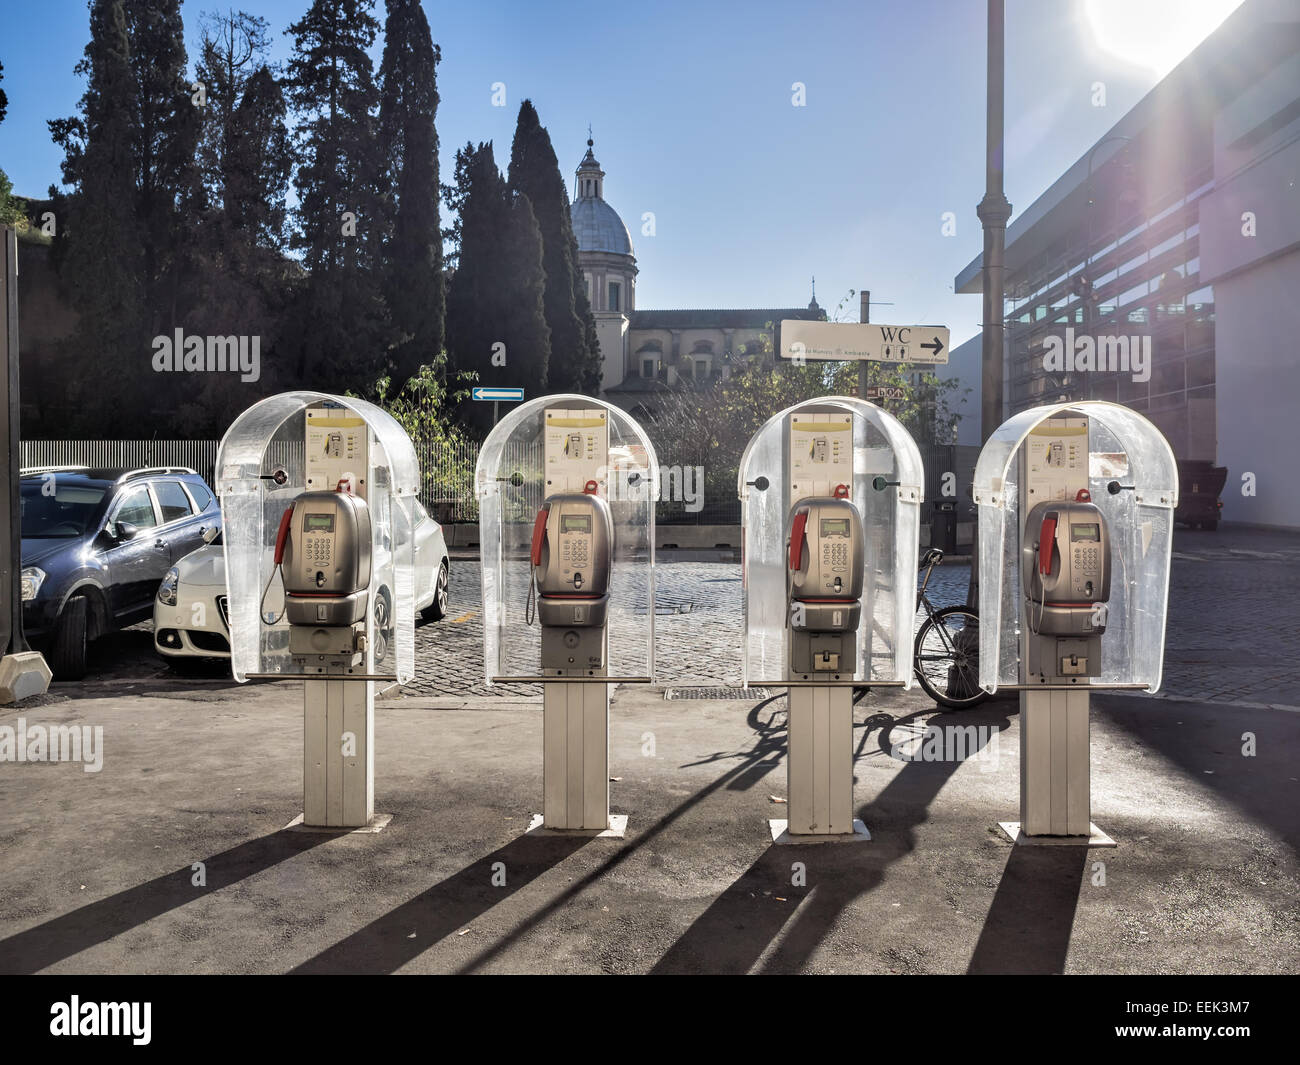 Four public telephones in a row in Rome - Stock Image